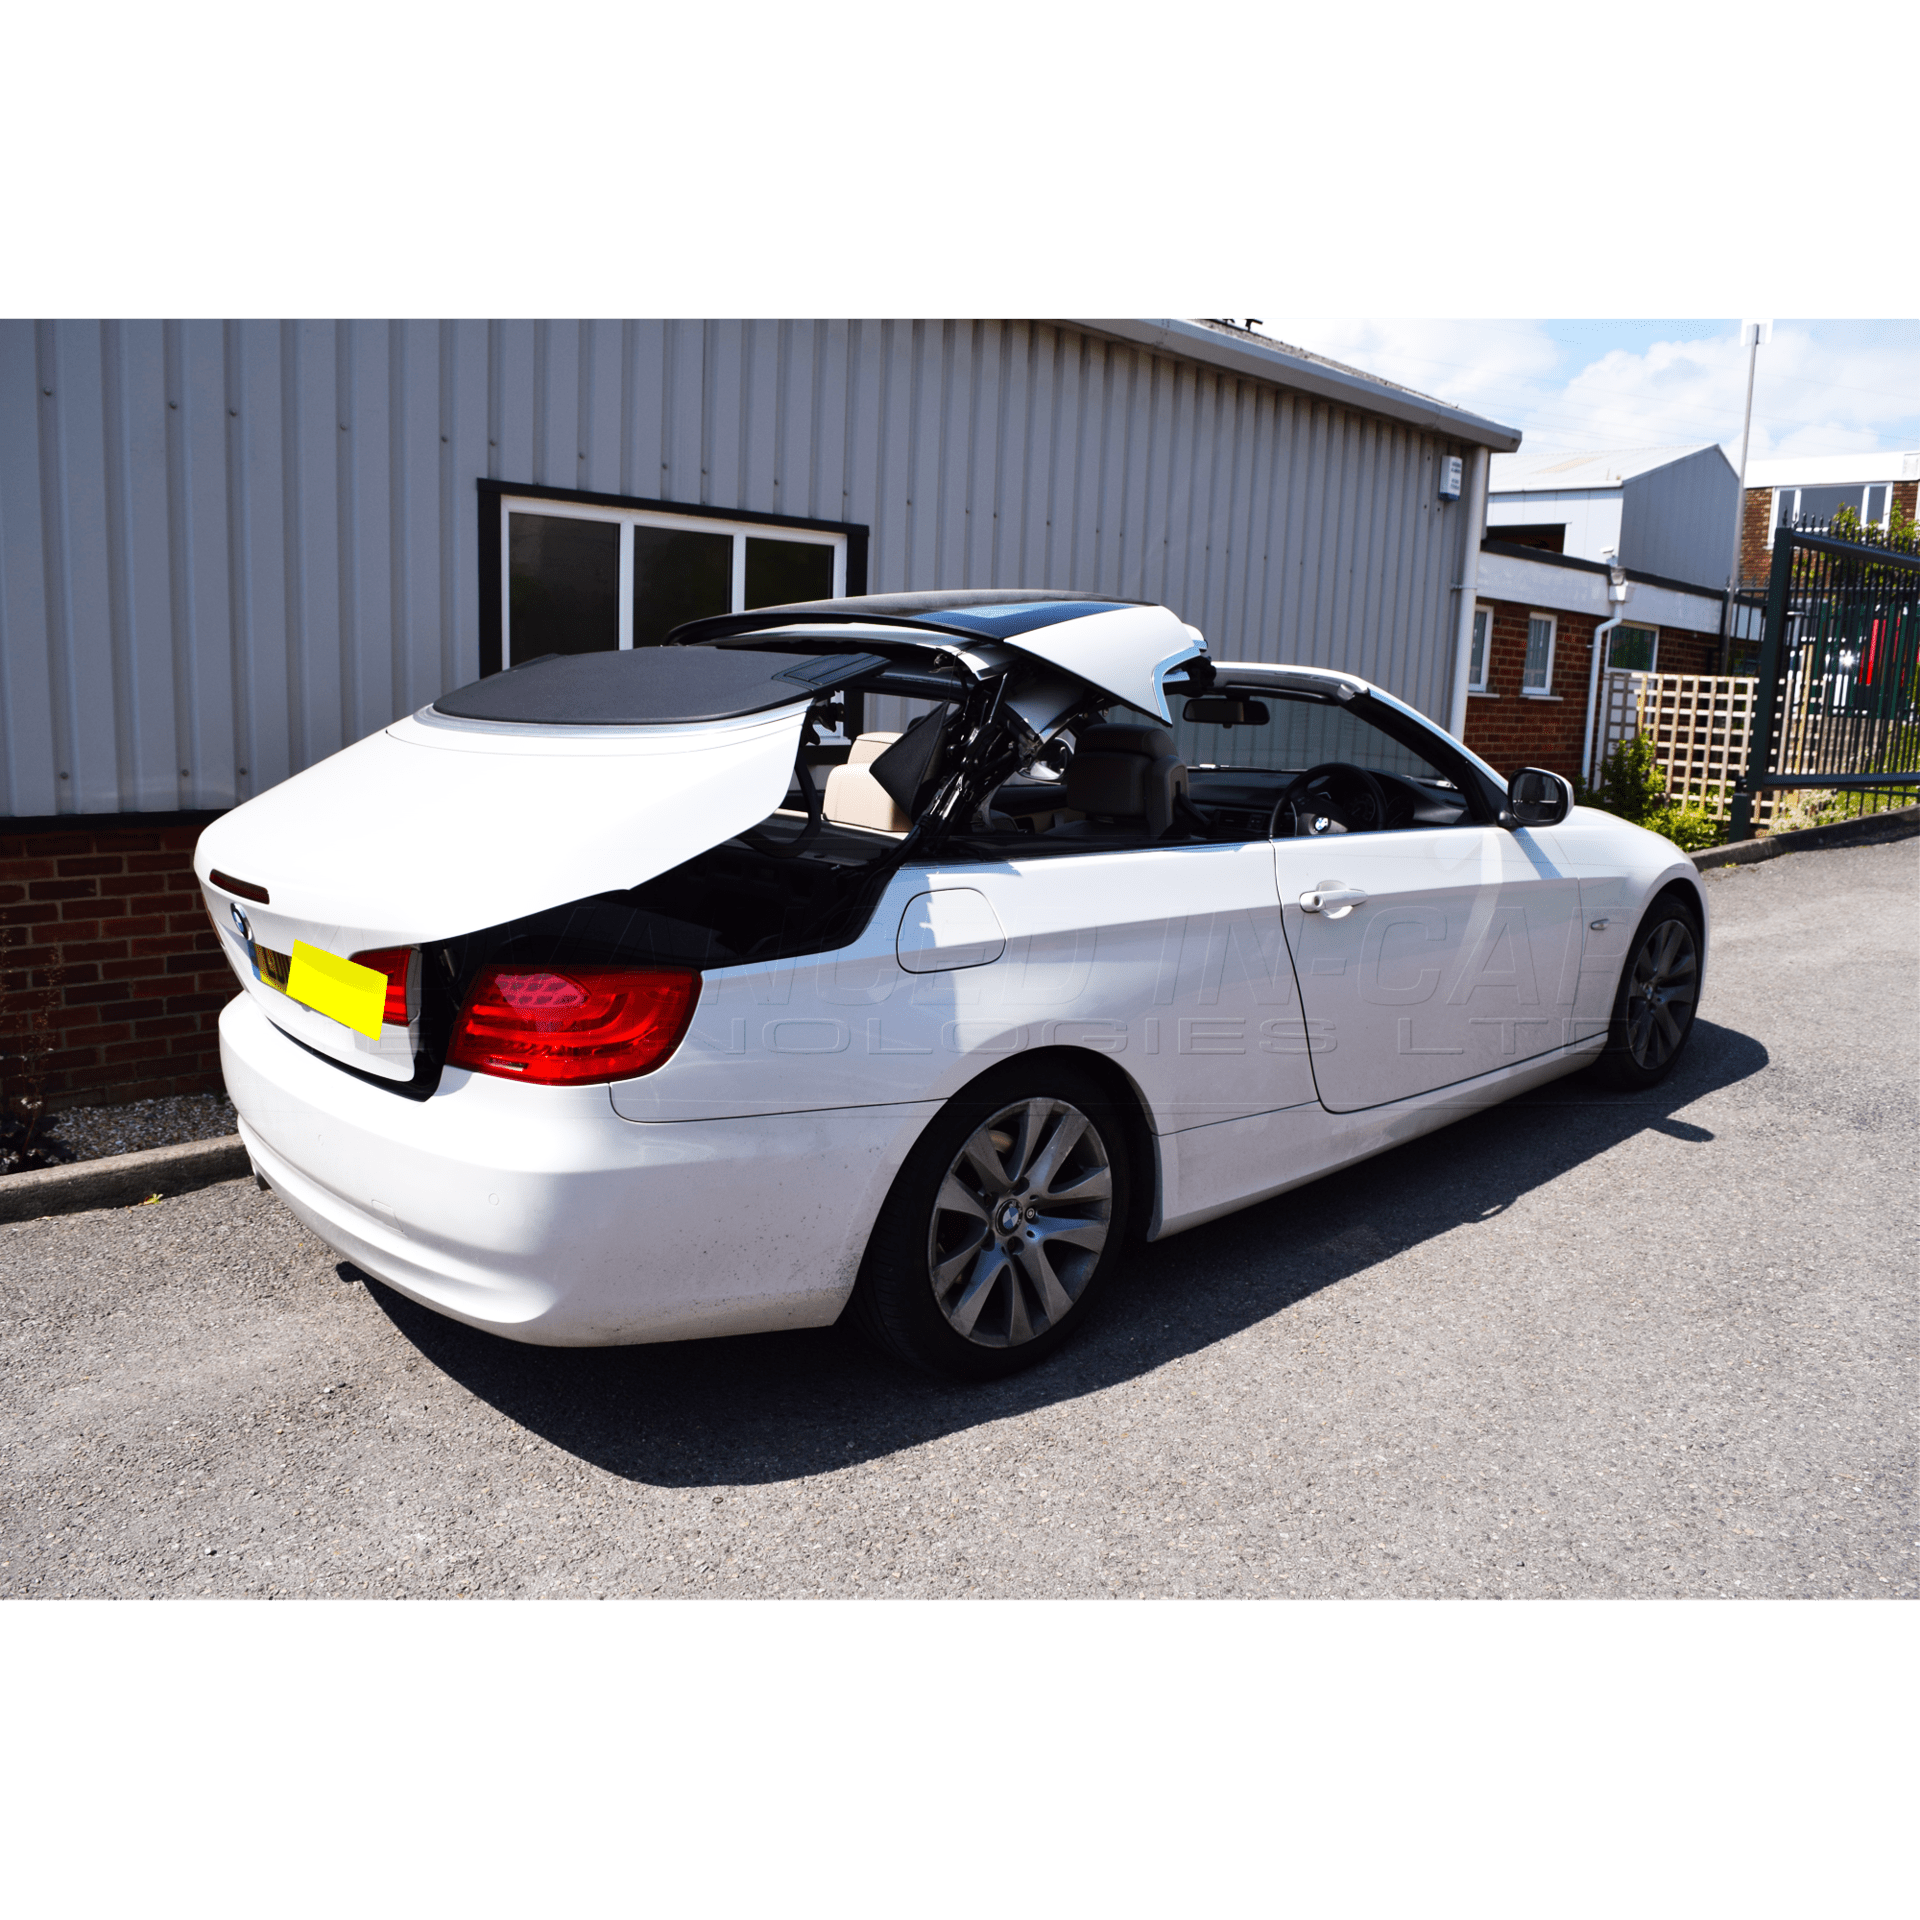 Bmw Convertible Remote Roof Open Module Advanced In